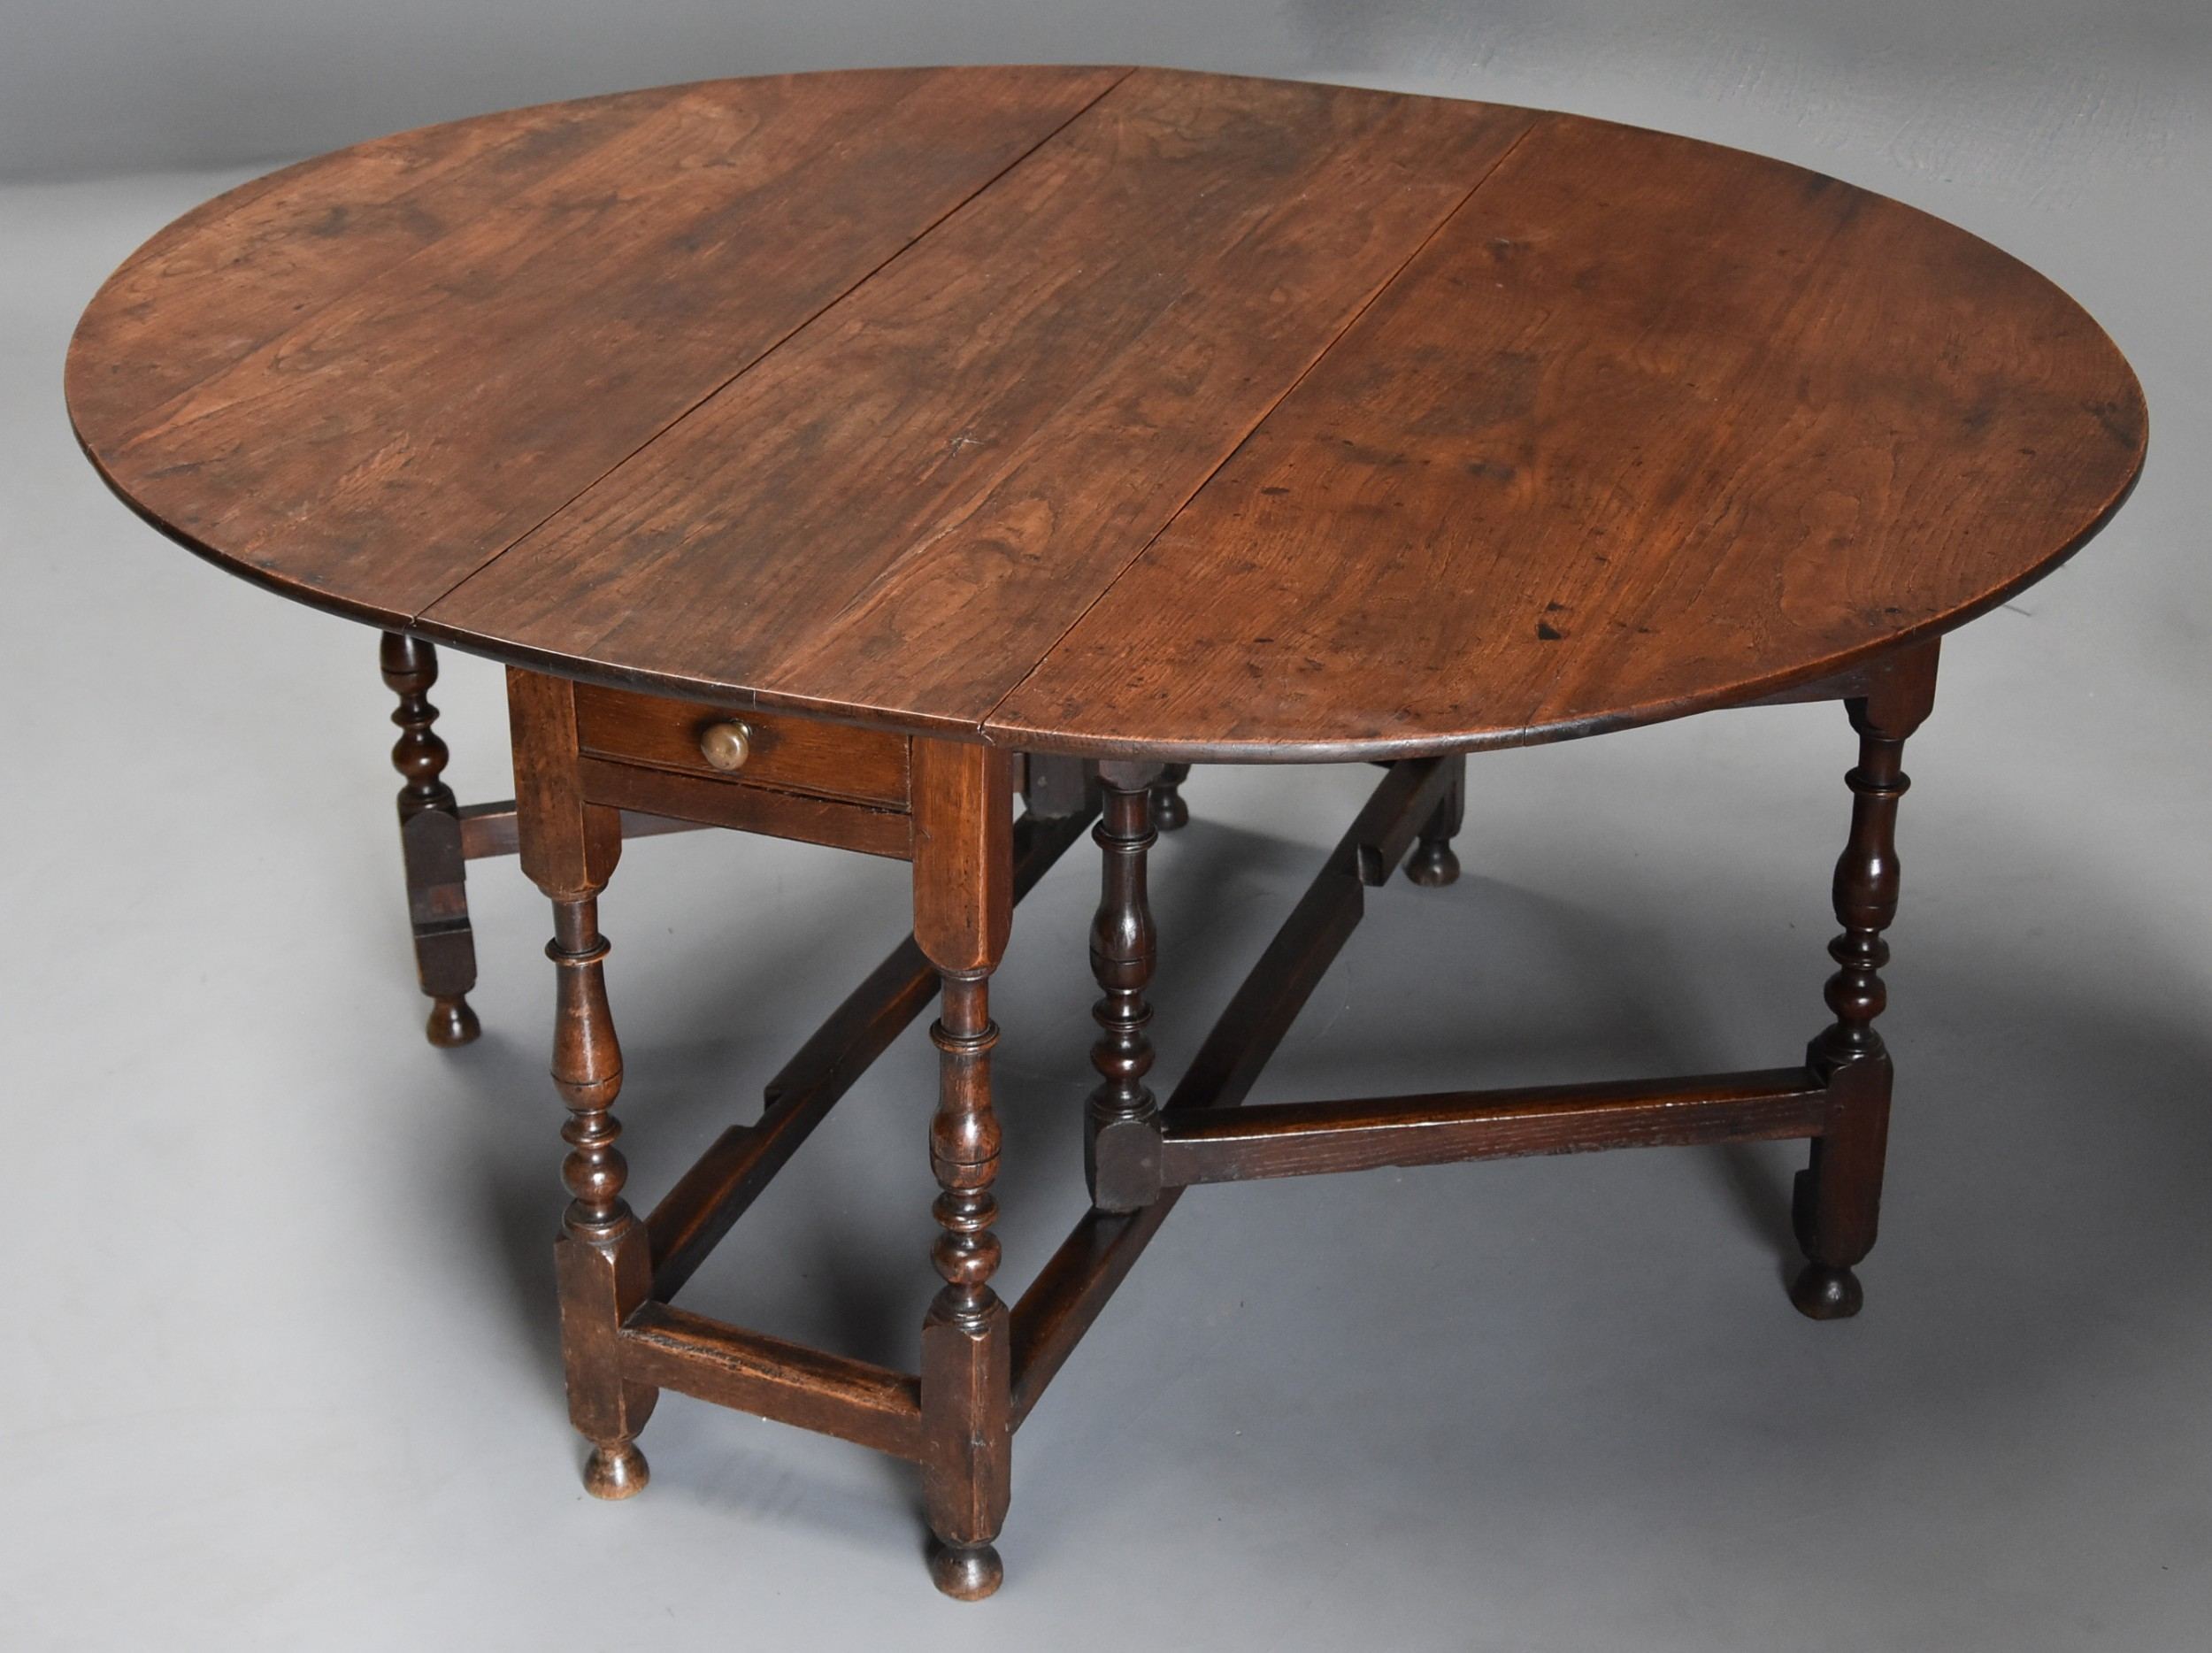 late 17th century oak gateleg table of good versatile size with fine patina